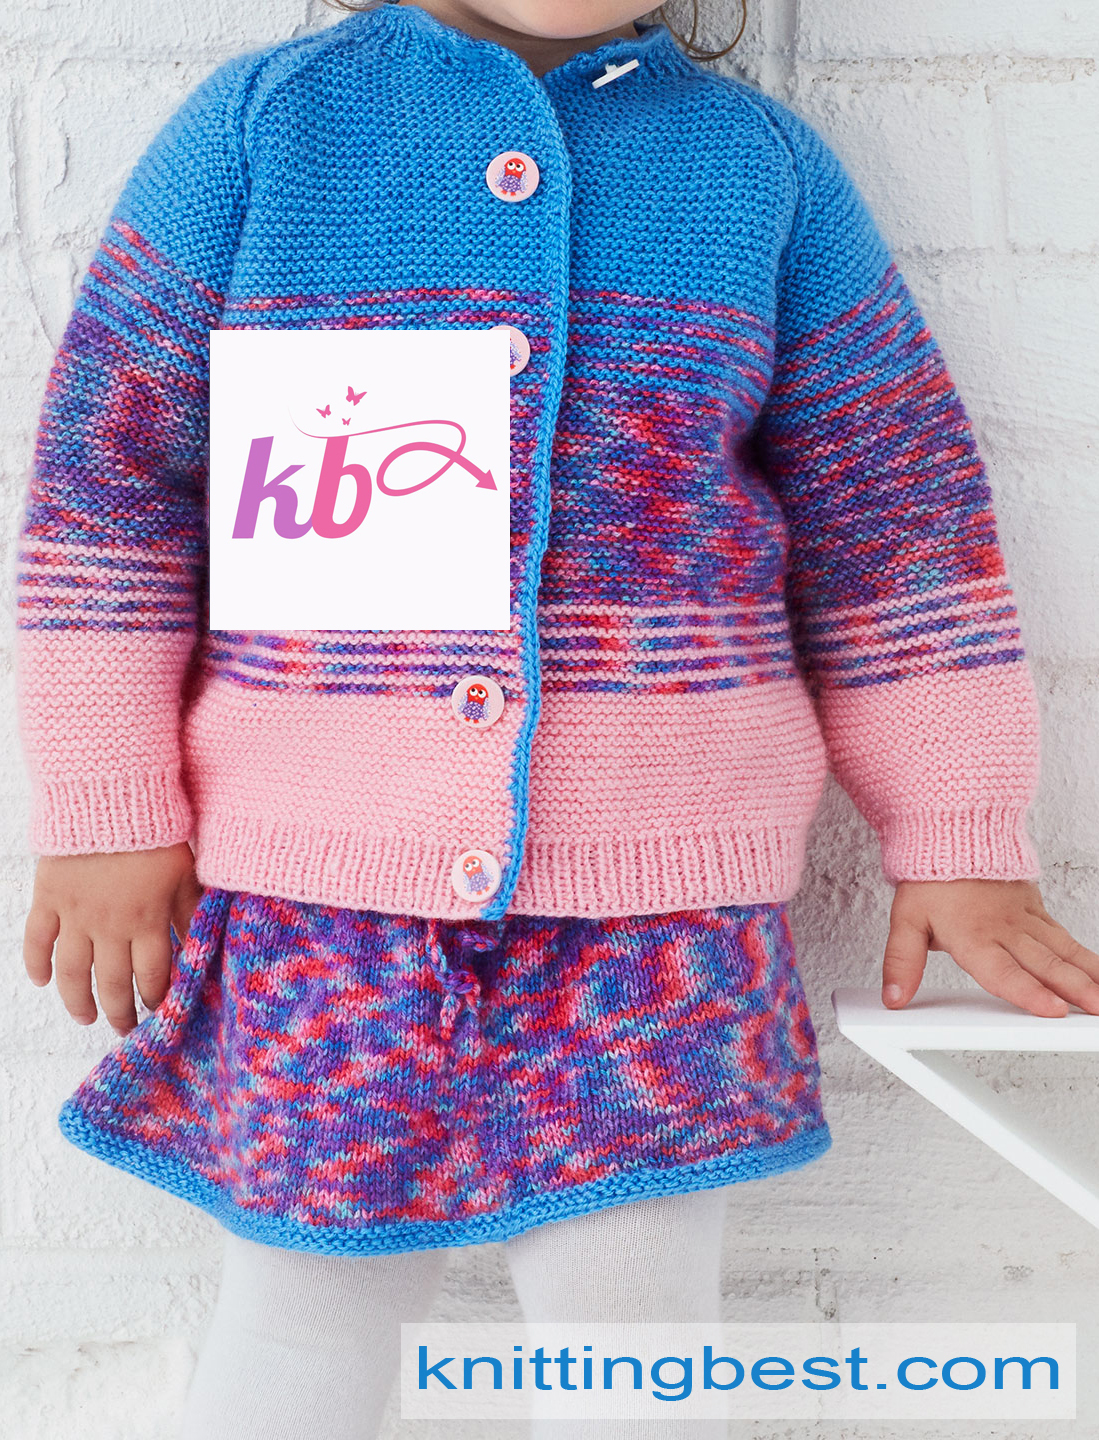 Colorful knitting for Kids